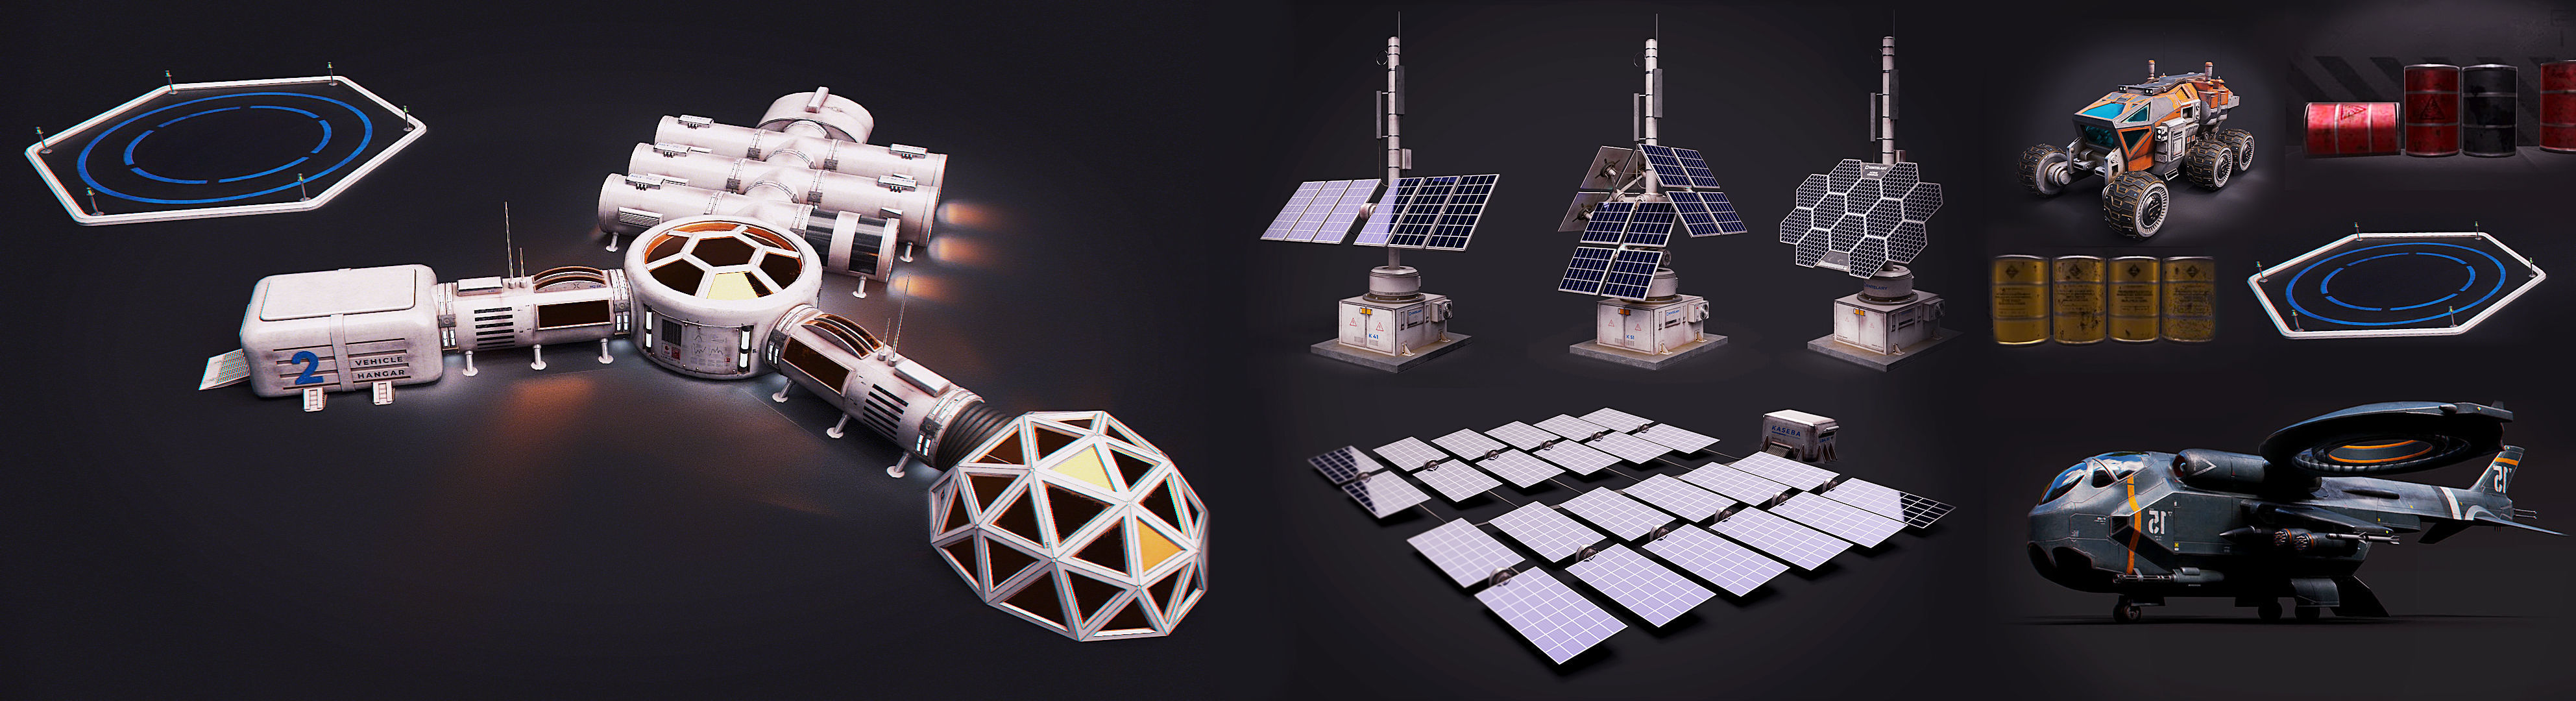 Space Craft Solar Panels Mars Colony Spaceship Collection Pack